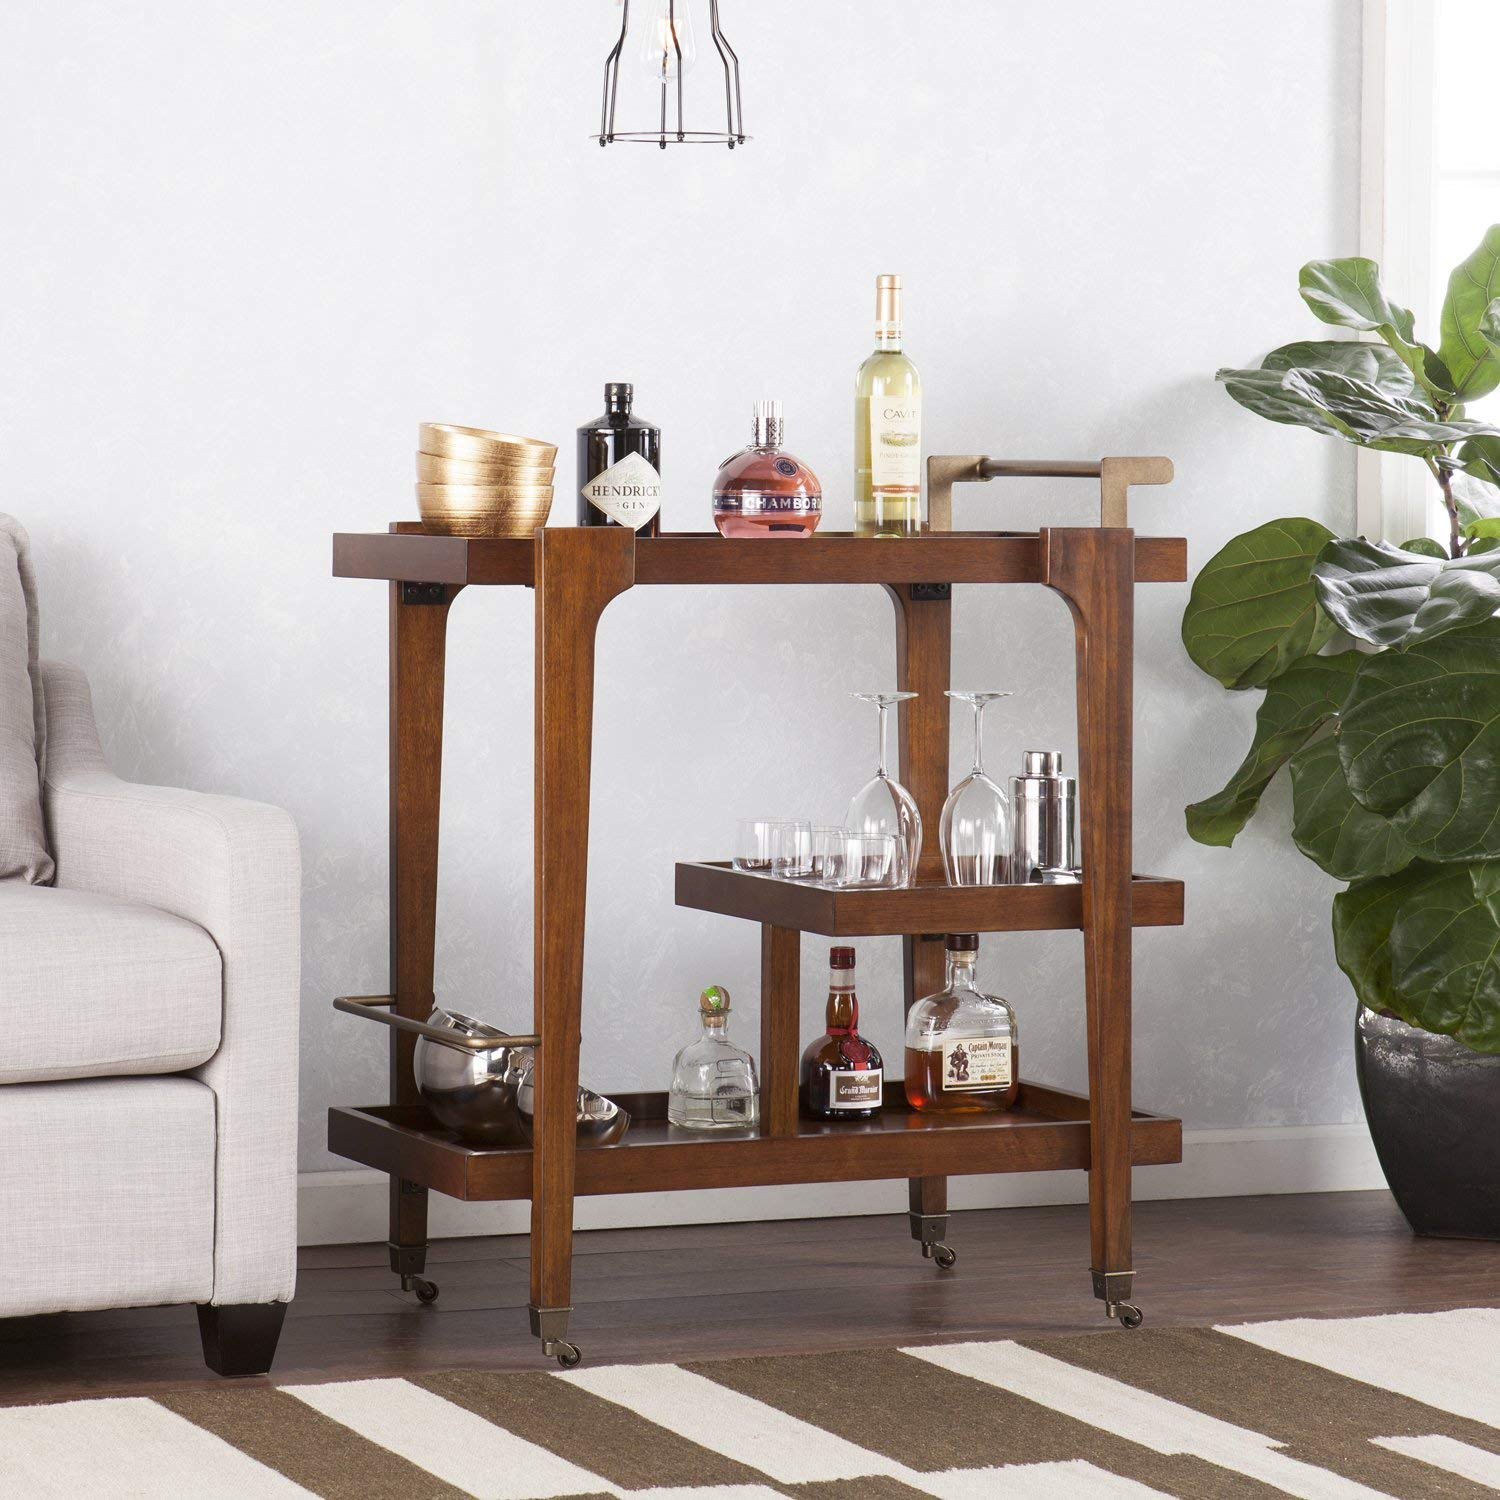 Midcentury Modern Bar Cart, Dark Tobacco w/ Aged Brass, Modern Style, 3-tier Bar/Serving Cart, Bottom Shelf has Guardrail to Protect Bottles, Roll with Ease or Lock in Place with Functional Casters